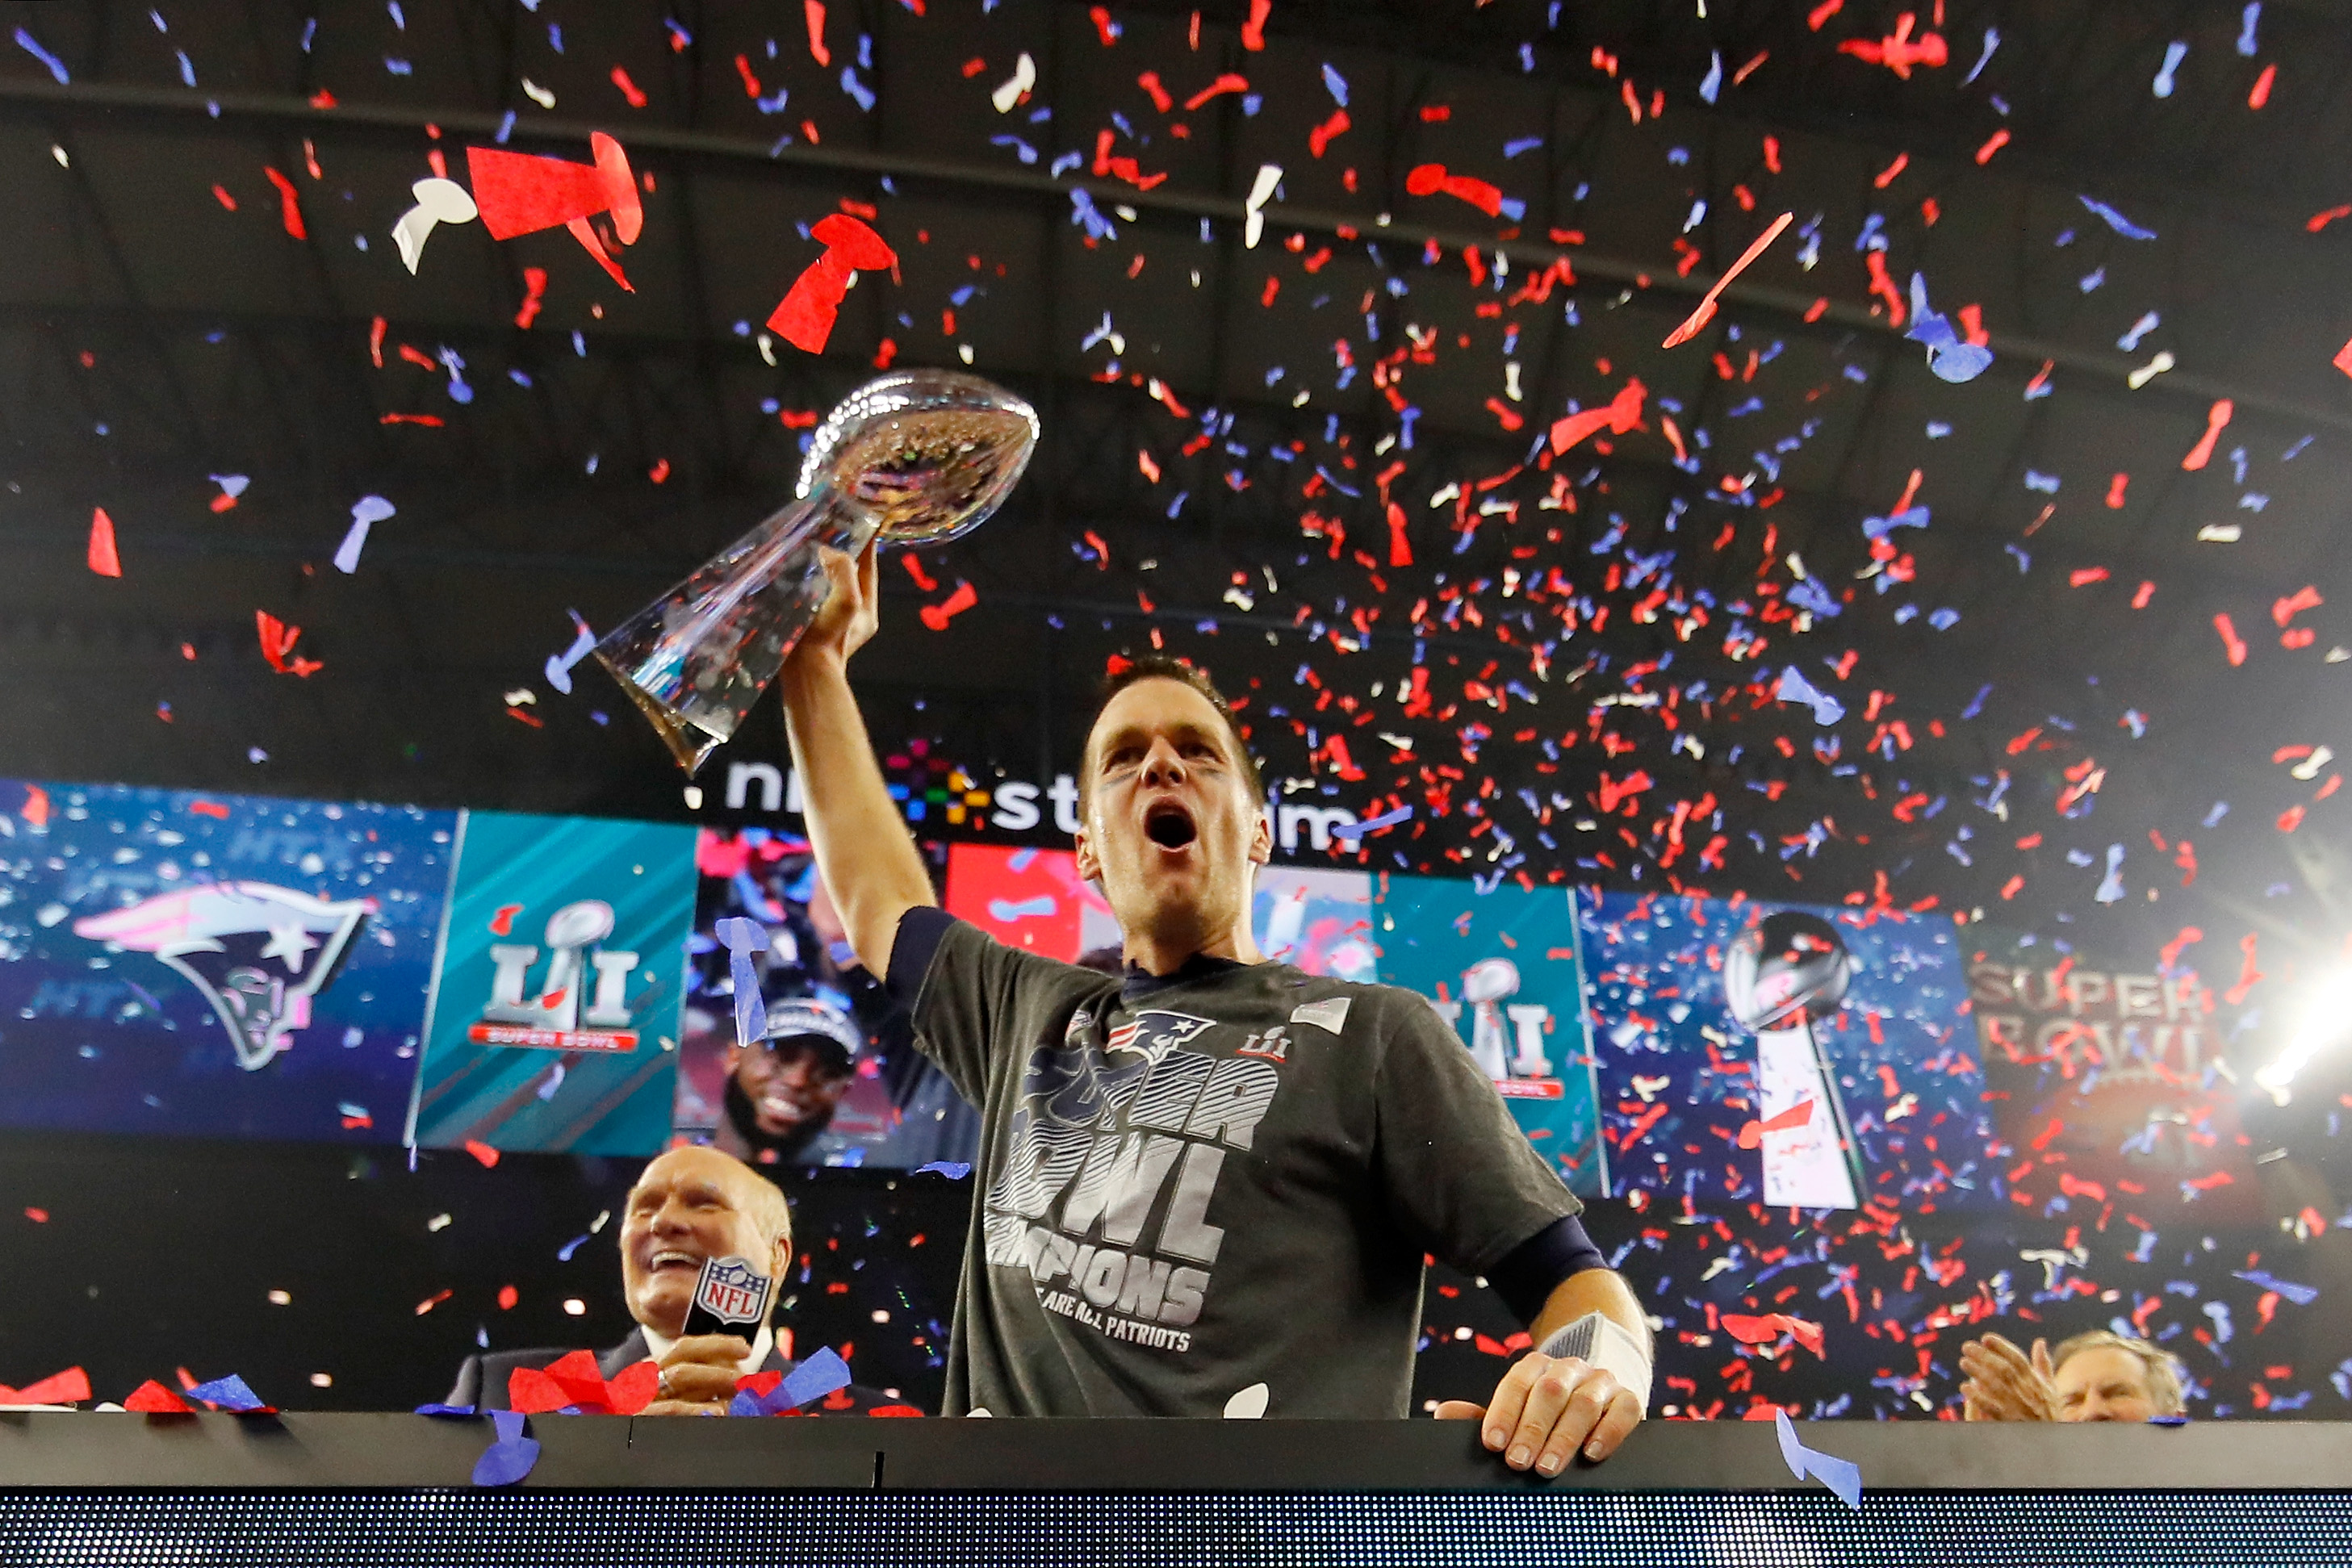 Tom Brady celebrates with the Vince Lombardi Trophy after NFL commissioner Roger Goodell handed the trophy to Patriots owner Bob Kraft. (Getty Images)